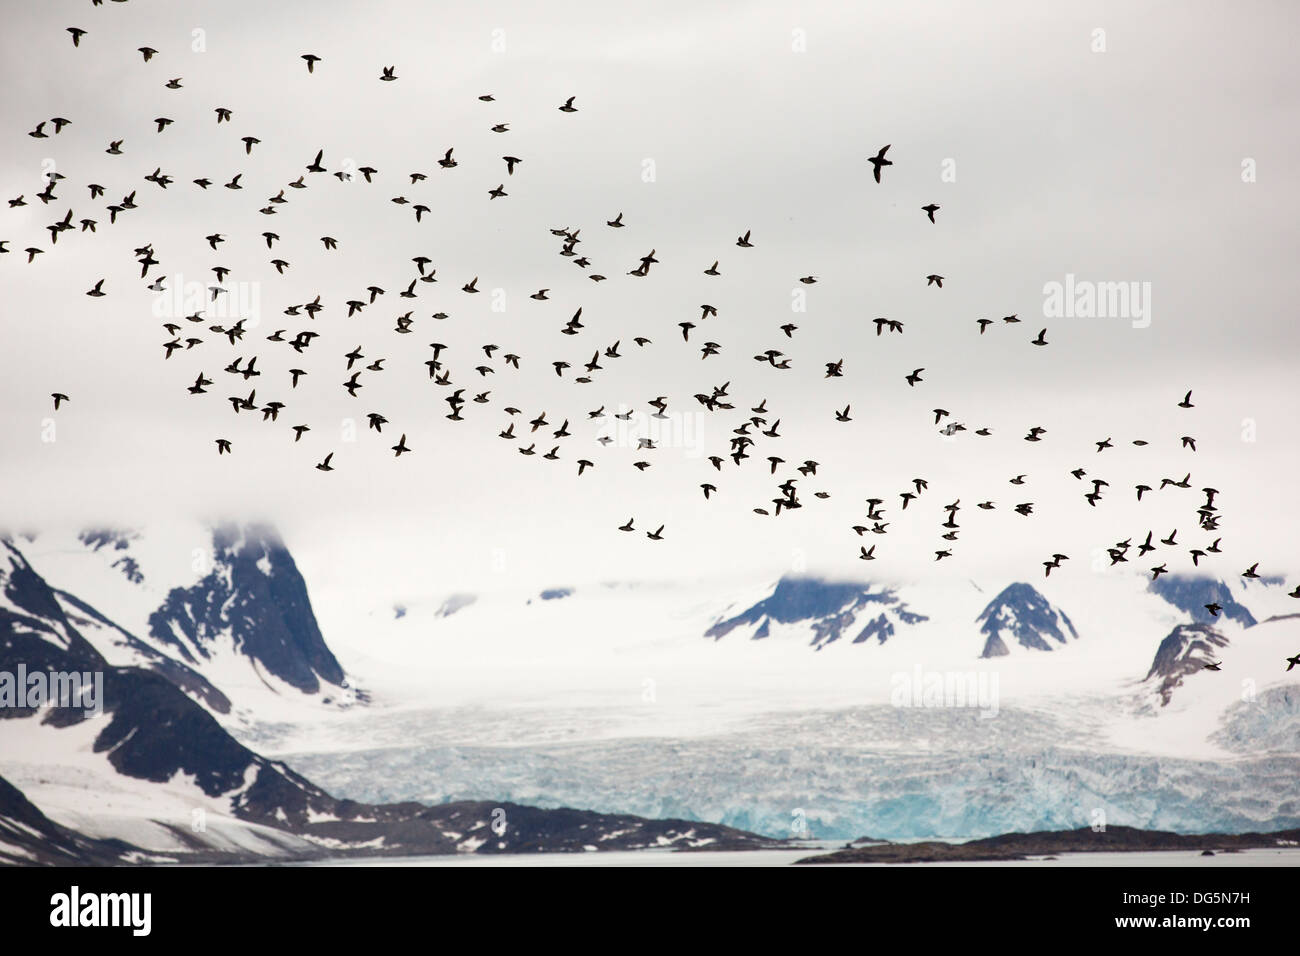 Little Auks Or Dovekie Alle At A Nesting Colony Sallyhamna 7951n 1123e On The North Coast Of Spitsbergen Svalbard